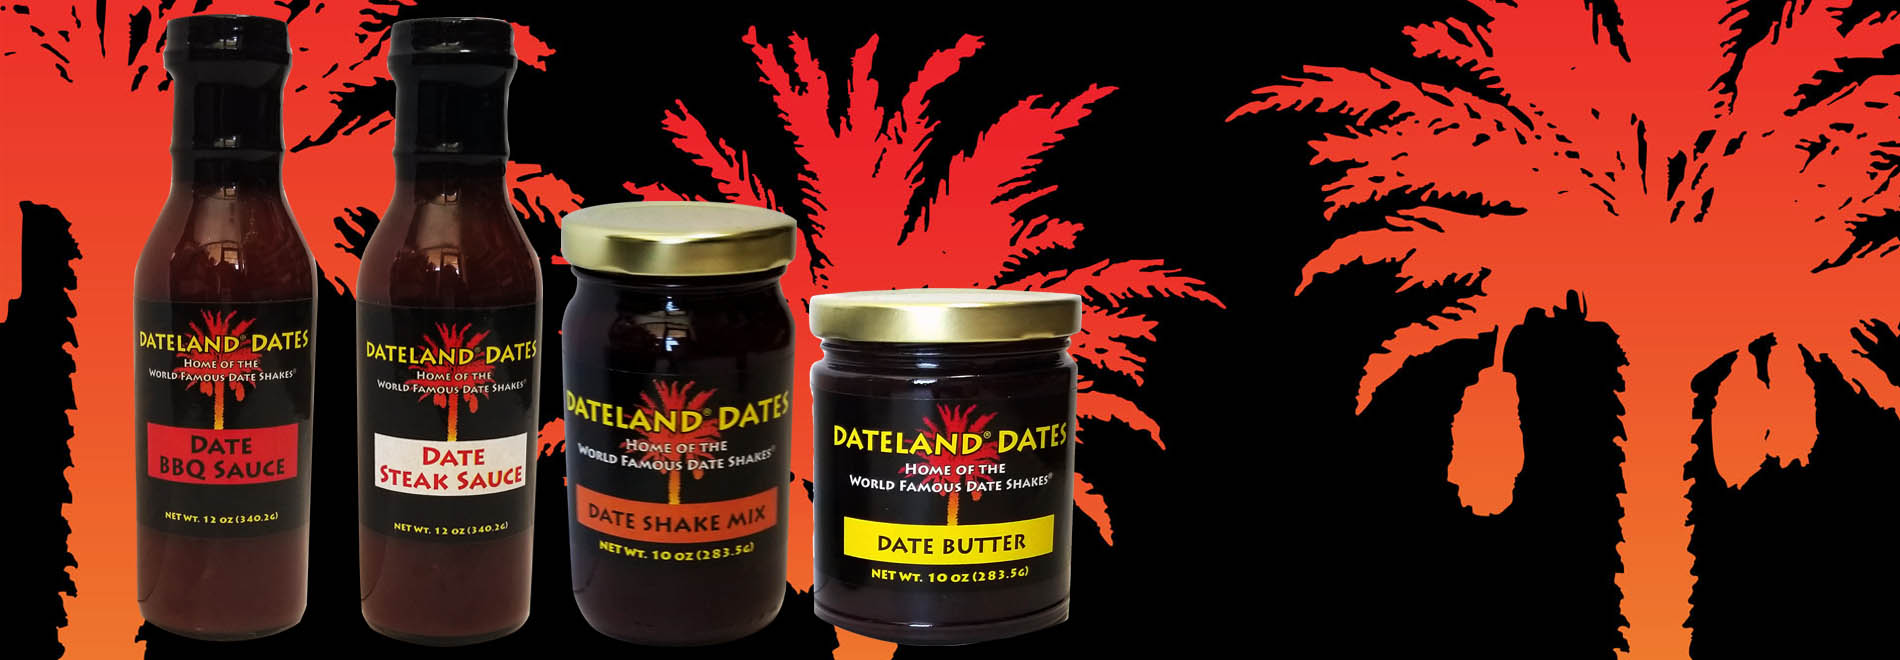 We Have Date Sauces, Jams, Butters & Our World Famous Date Shake Mix